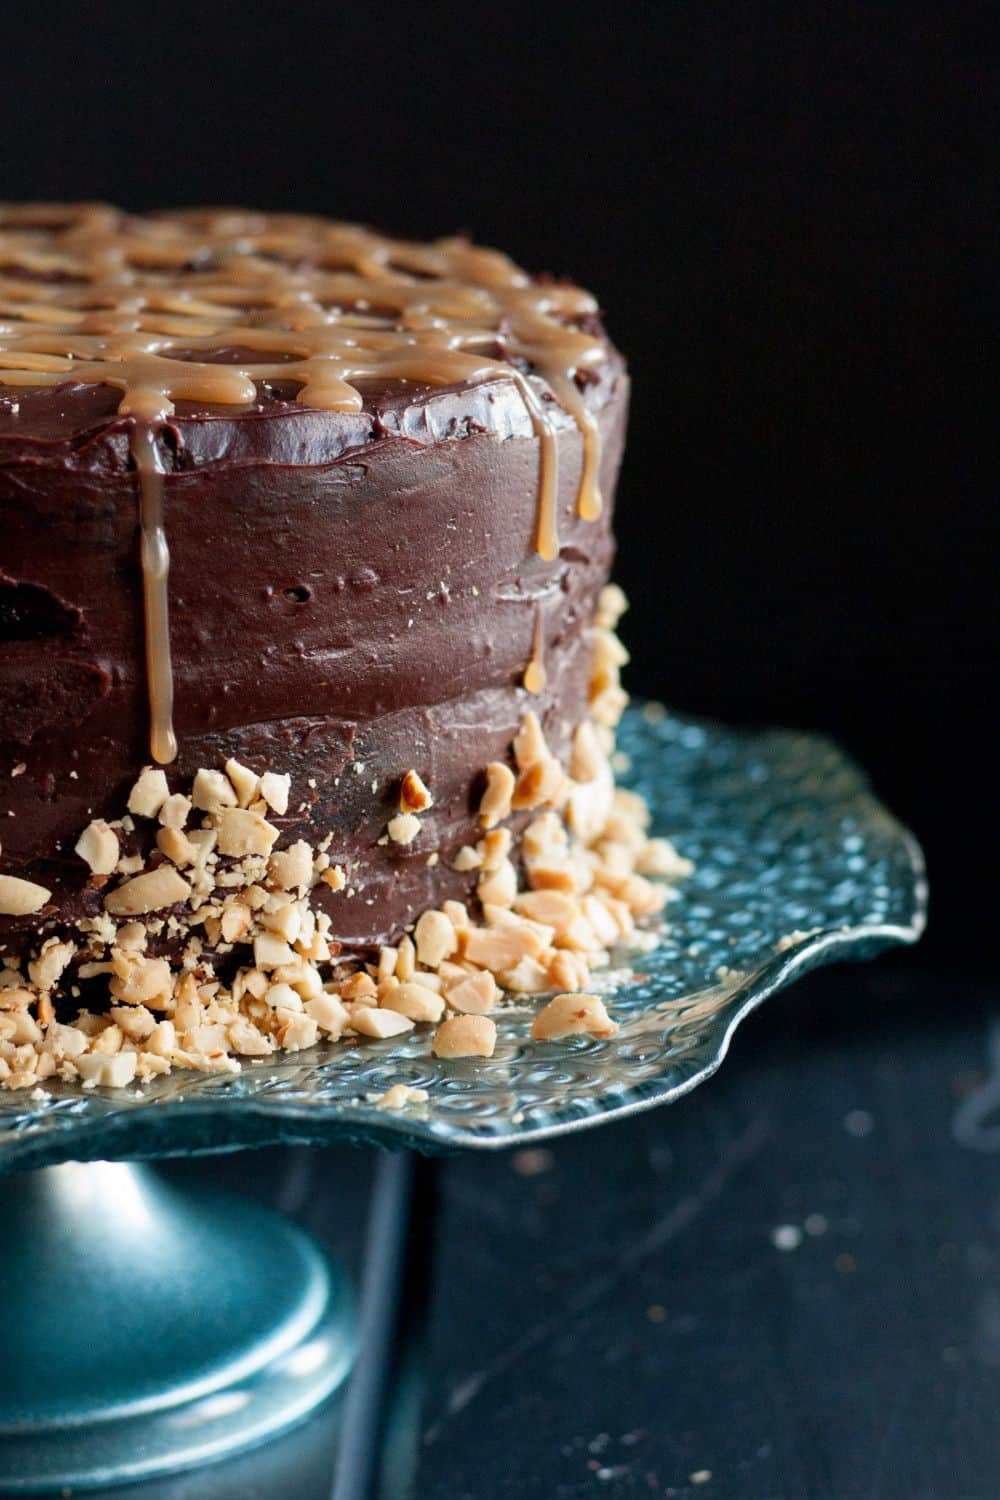 Rich chocolate cake, layers of homemade nougat, peanuts, and caramel, all covered with a rich ganache - candy bar dreams come to life! Recipe on GoodieGodmother.com